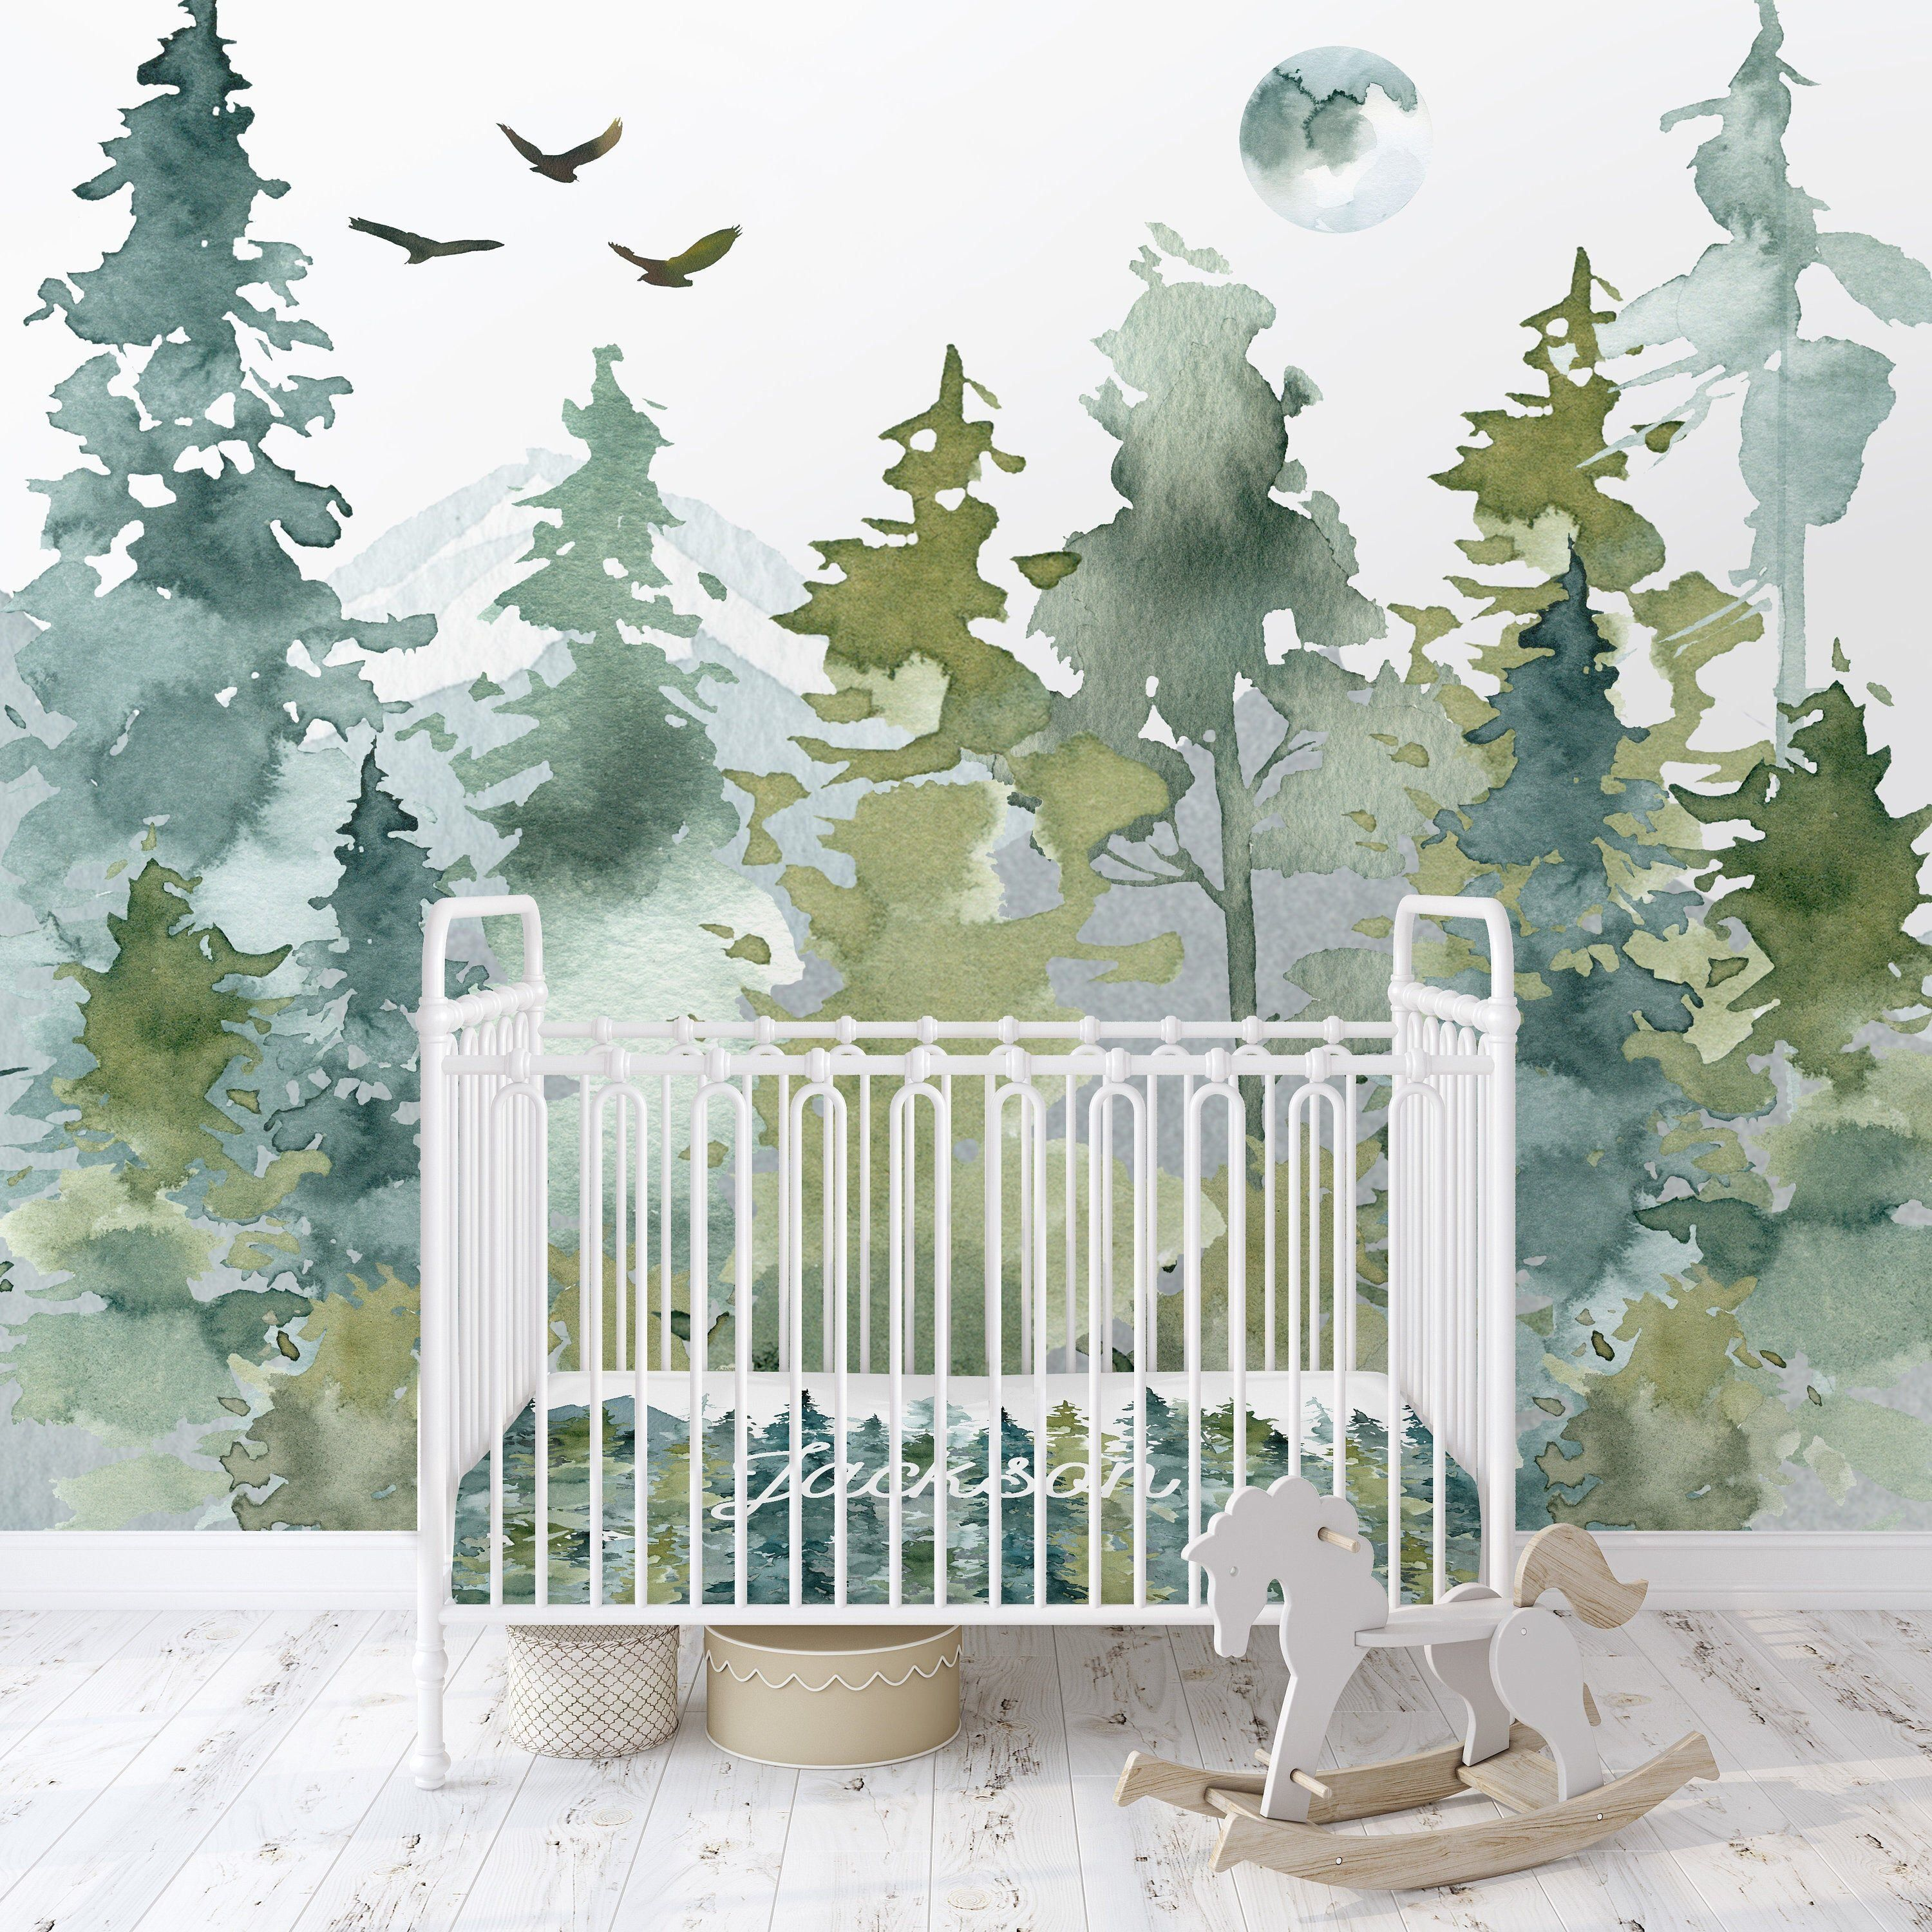 Woodland Wallpaper Peel And Stick Removable Baby Boy Nursery Decor Country Watercolor Woodland In 2020 Woodland Wallpaper Baby Boy Nursery Decor Nursery Mural